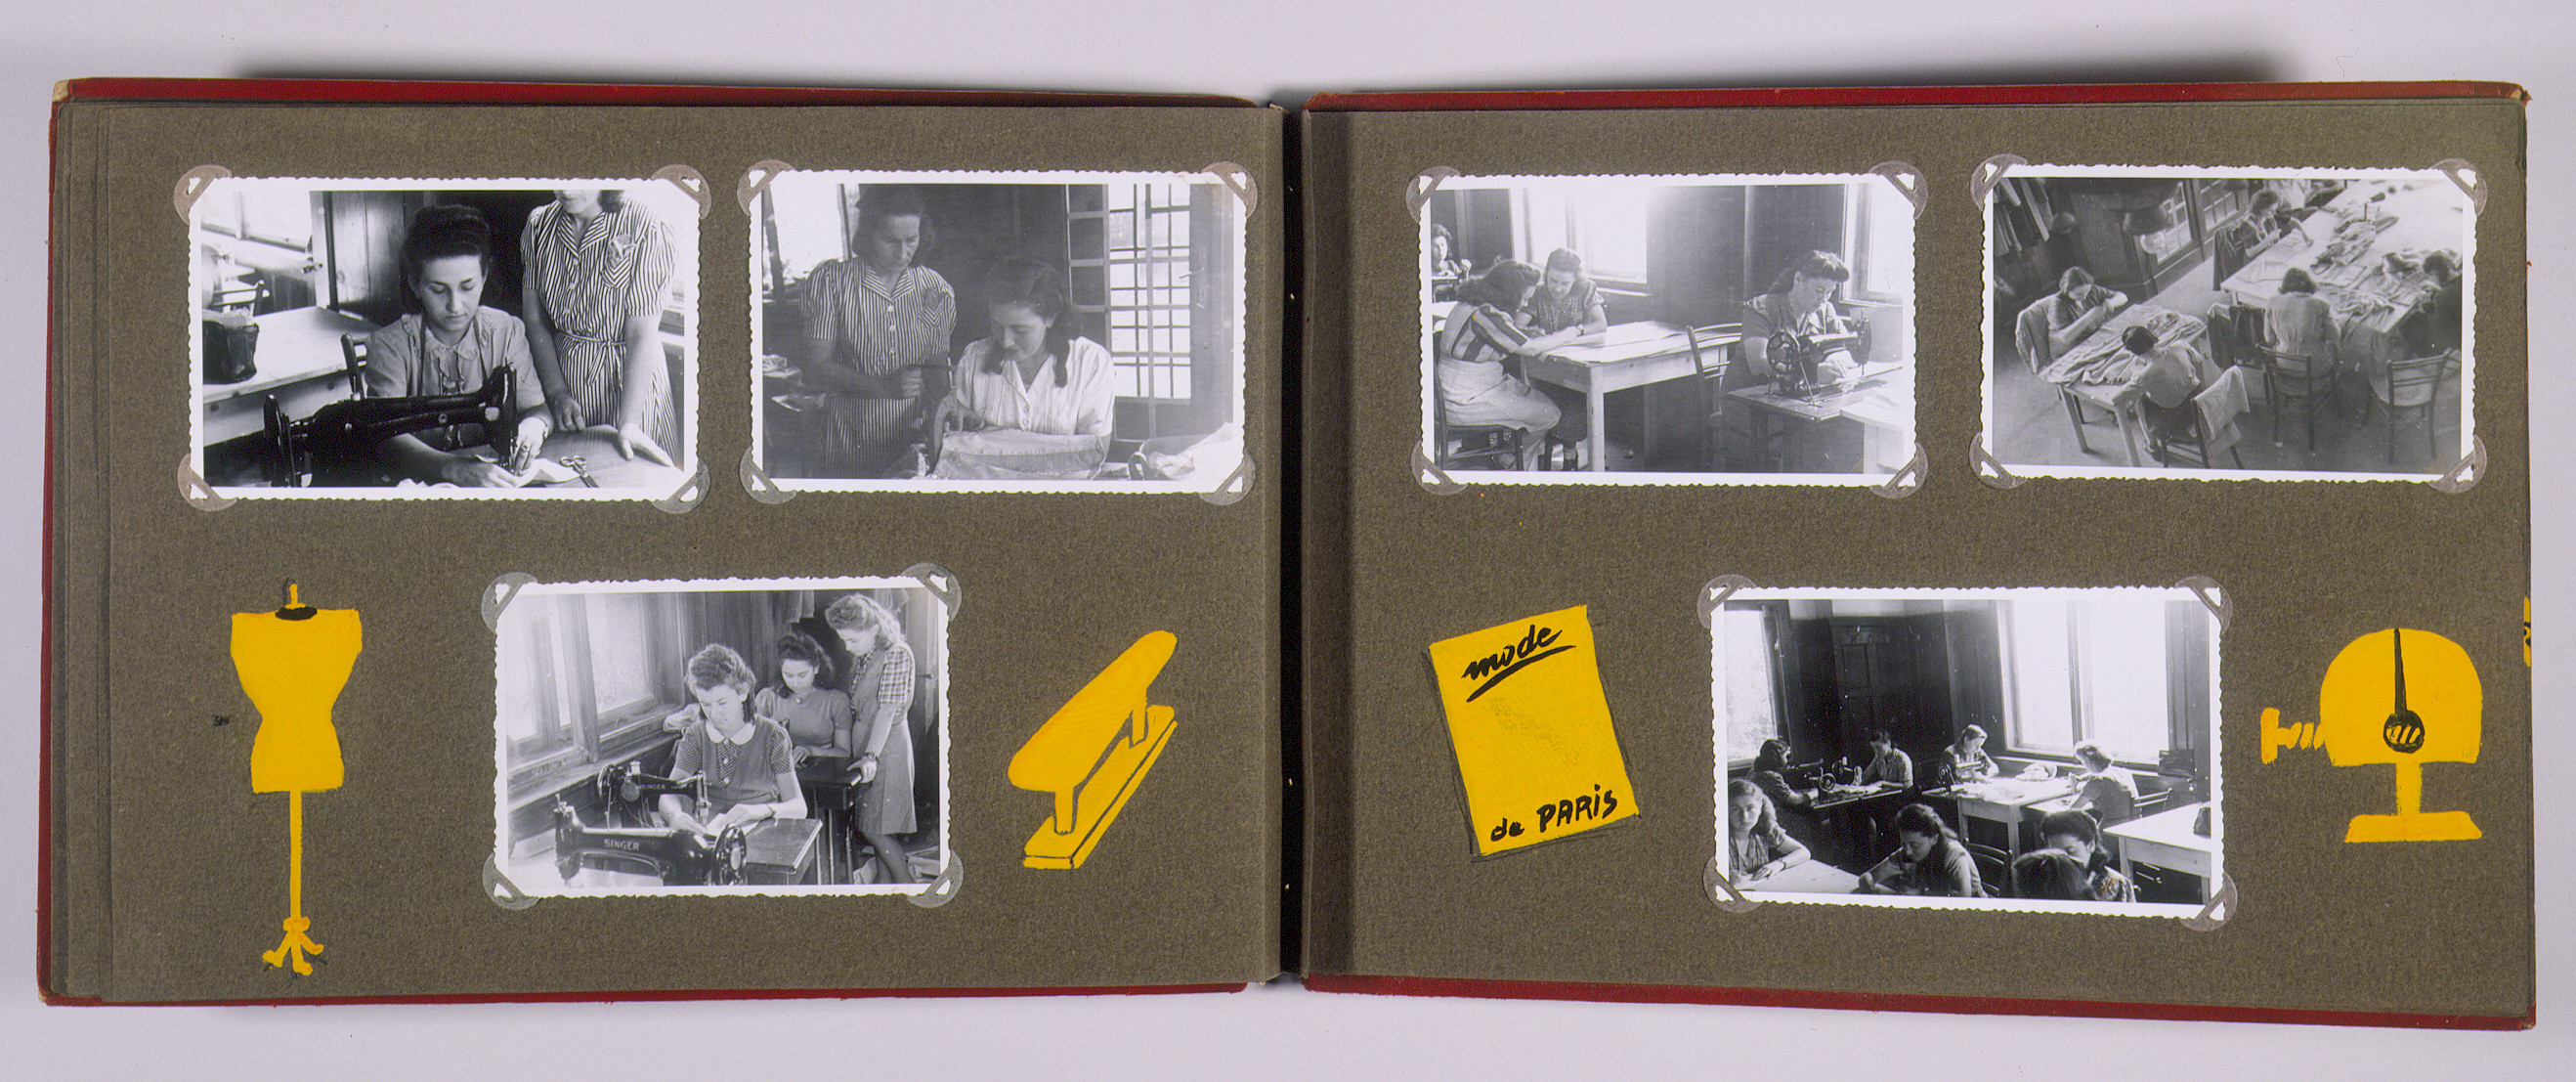 """Family album that belonged to Moritz Friedler, bearing the title """"Motoring/Jewish DP camp/St. Marein [Sankt Marien]/School.""""   In 1946 and 1947, Moritz Friedler served as a social worker with the Jewish Committee for Relief Abroad at the Sankt Marien DP camp in the British zone of Austria. Friedler subsequently became the JDC's Area Director in Linz, Austria.  The photo album documents Jewish DP life in both places."""